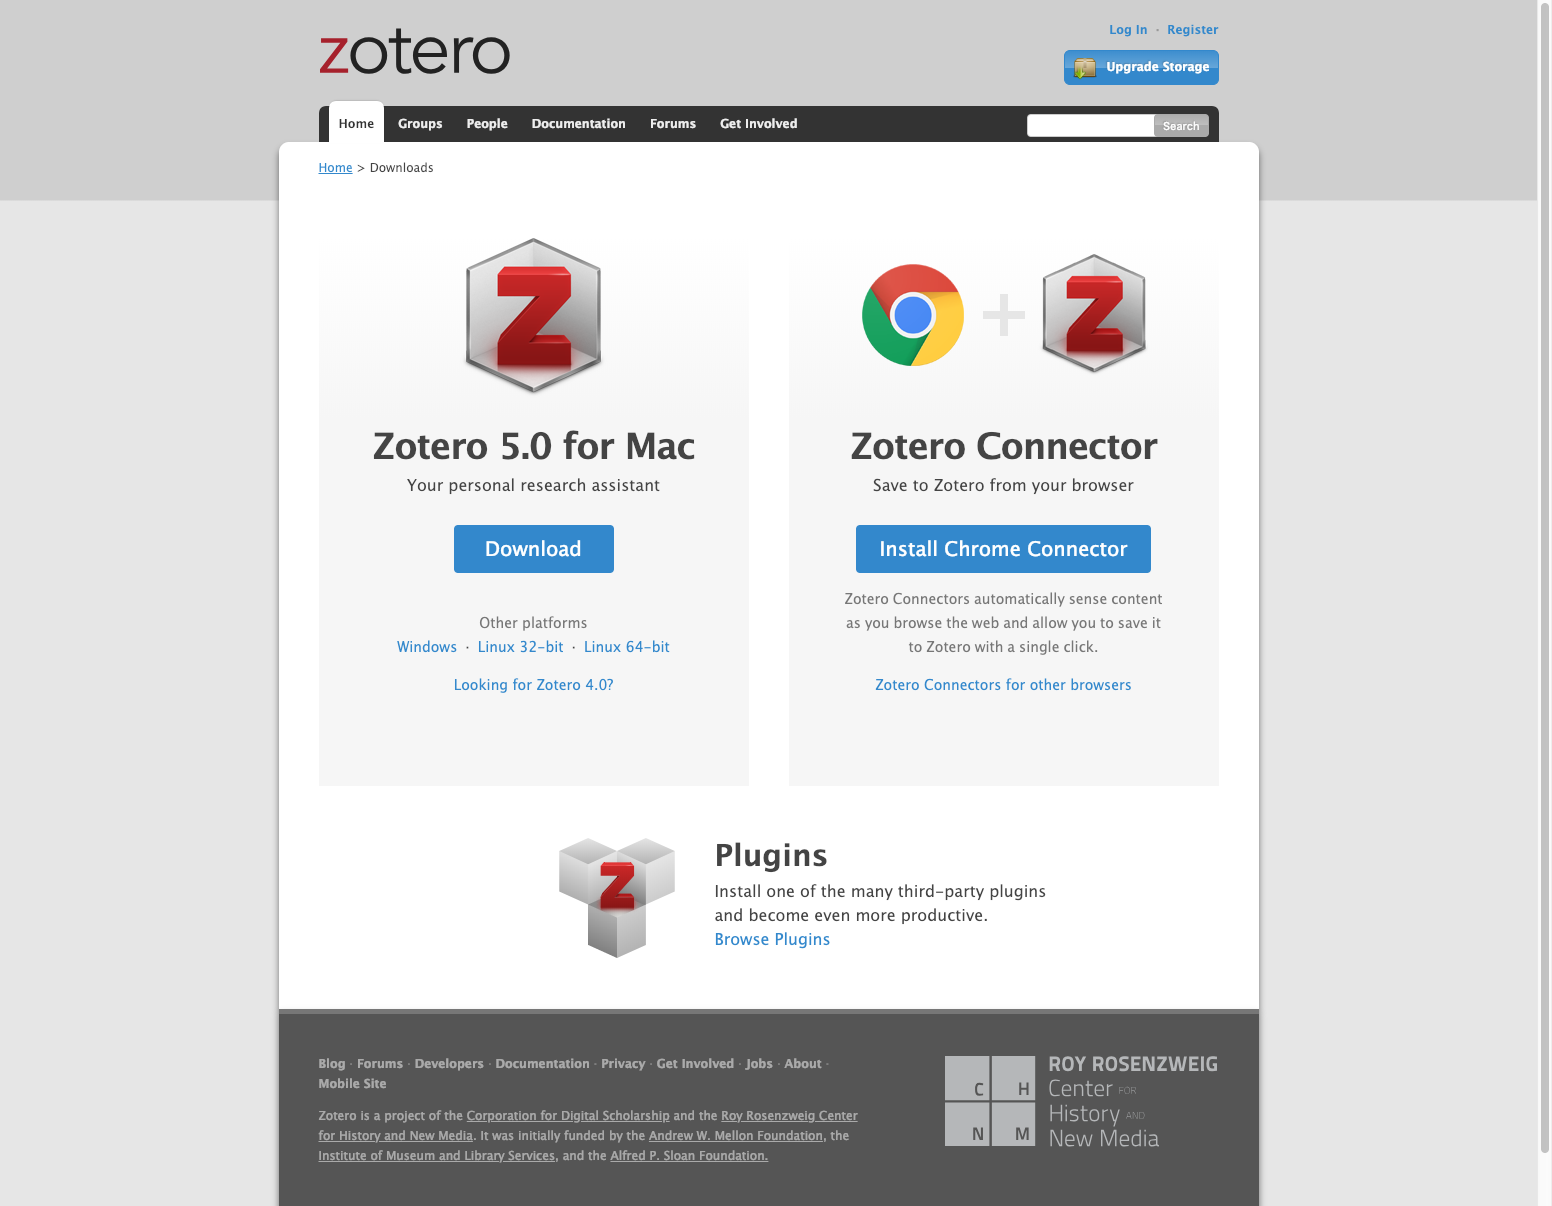 Download and install Zotero